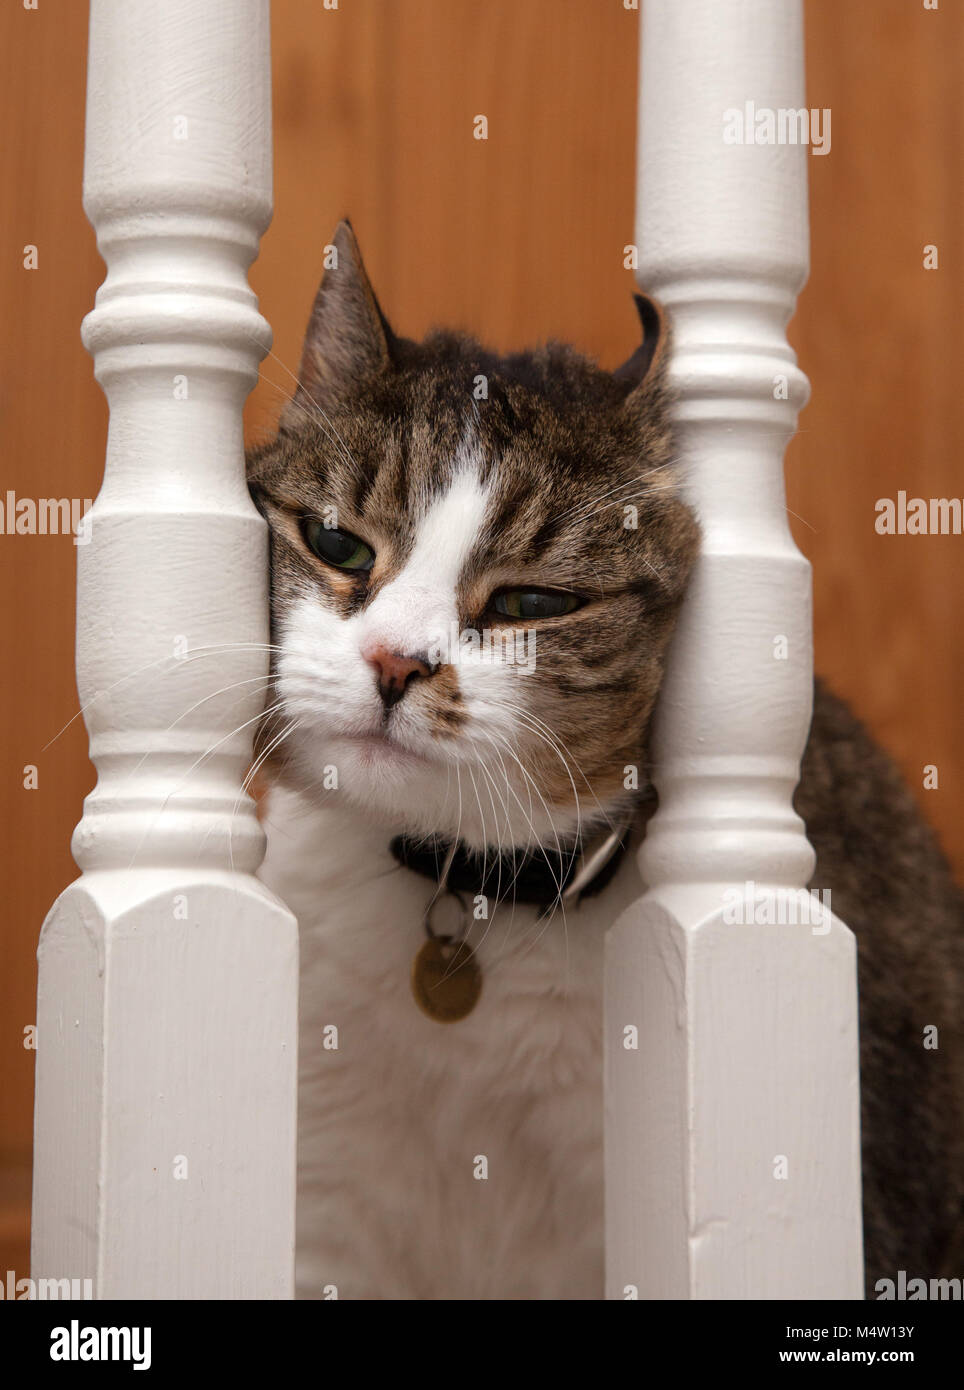 Tabby cat squeezing her face between some banister rails. - Stock Image